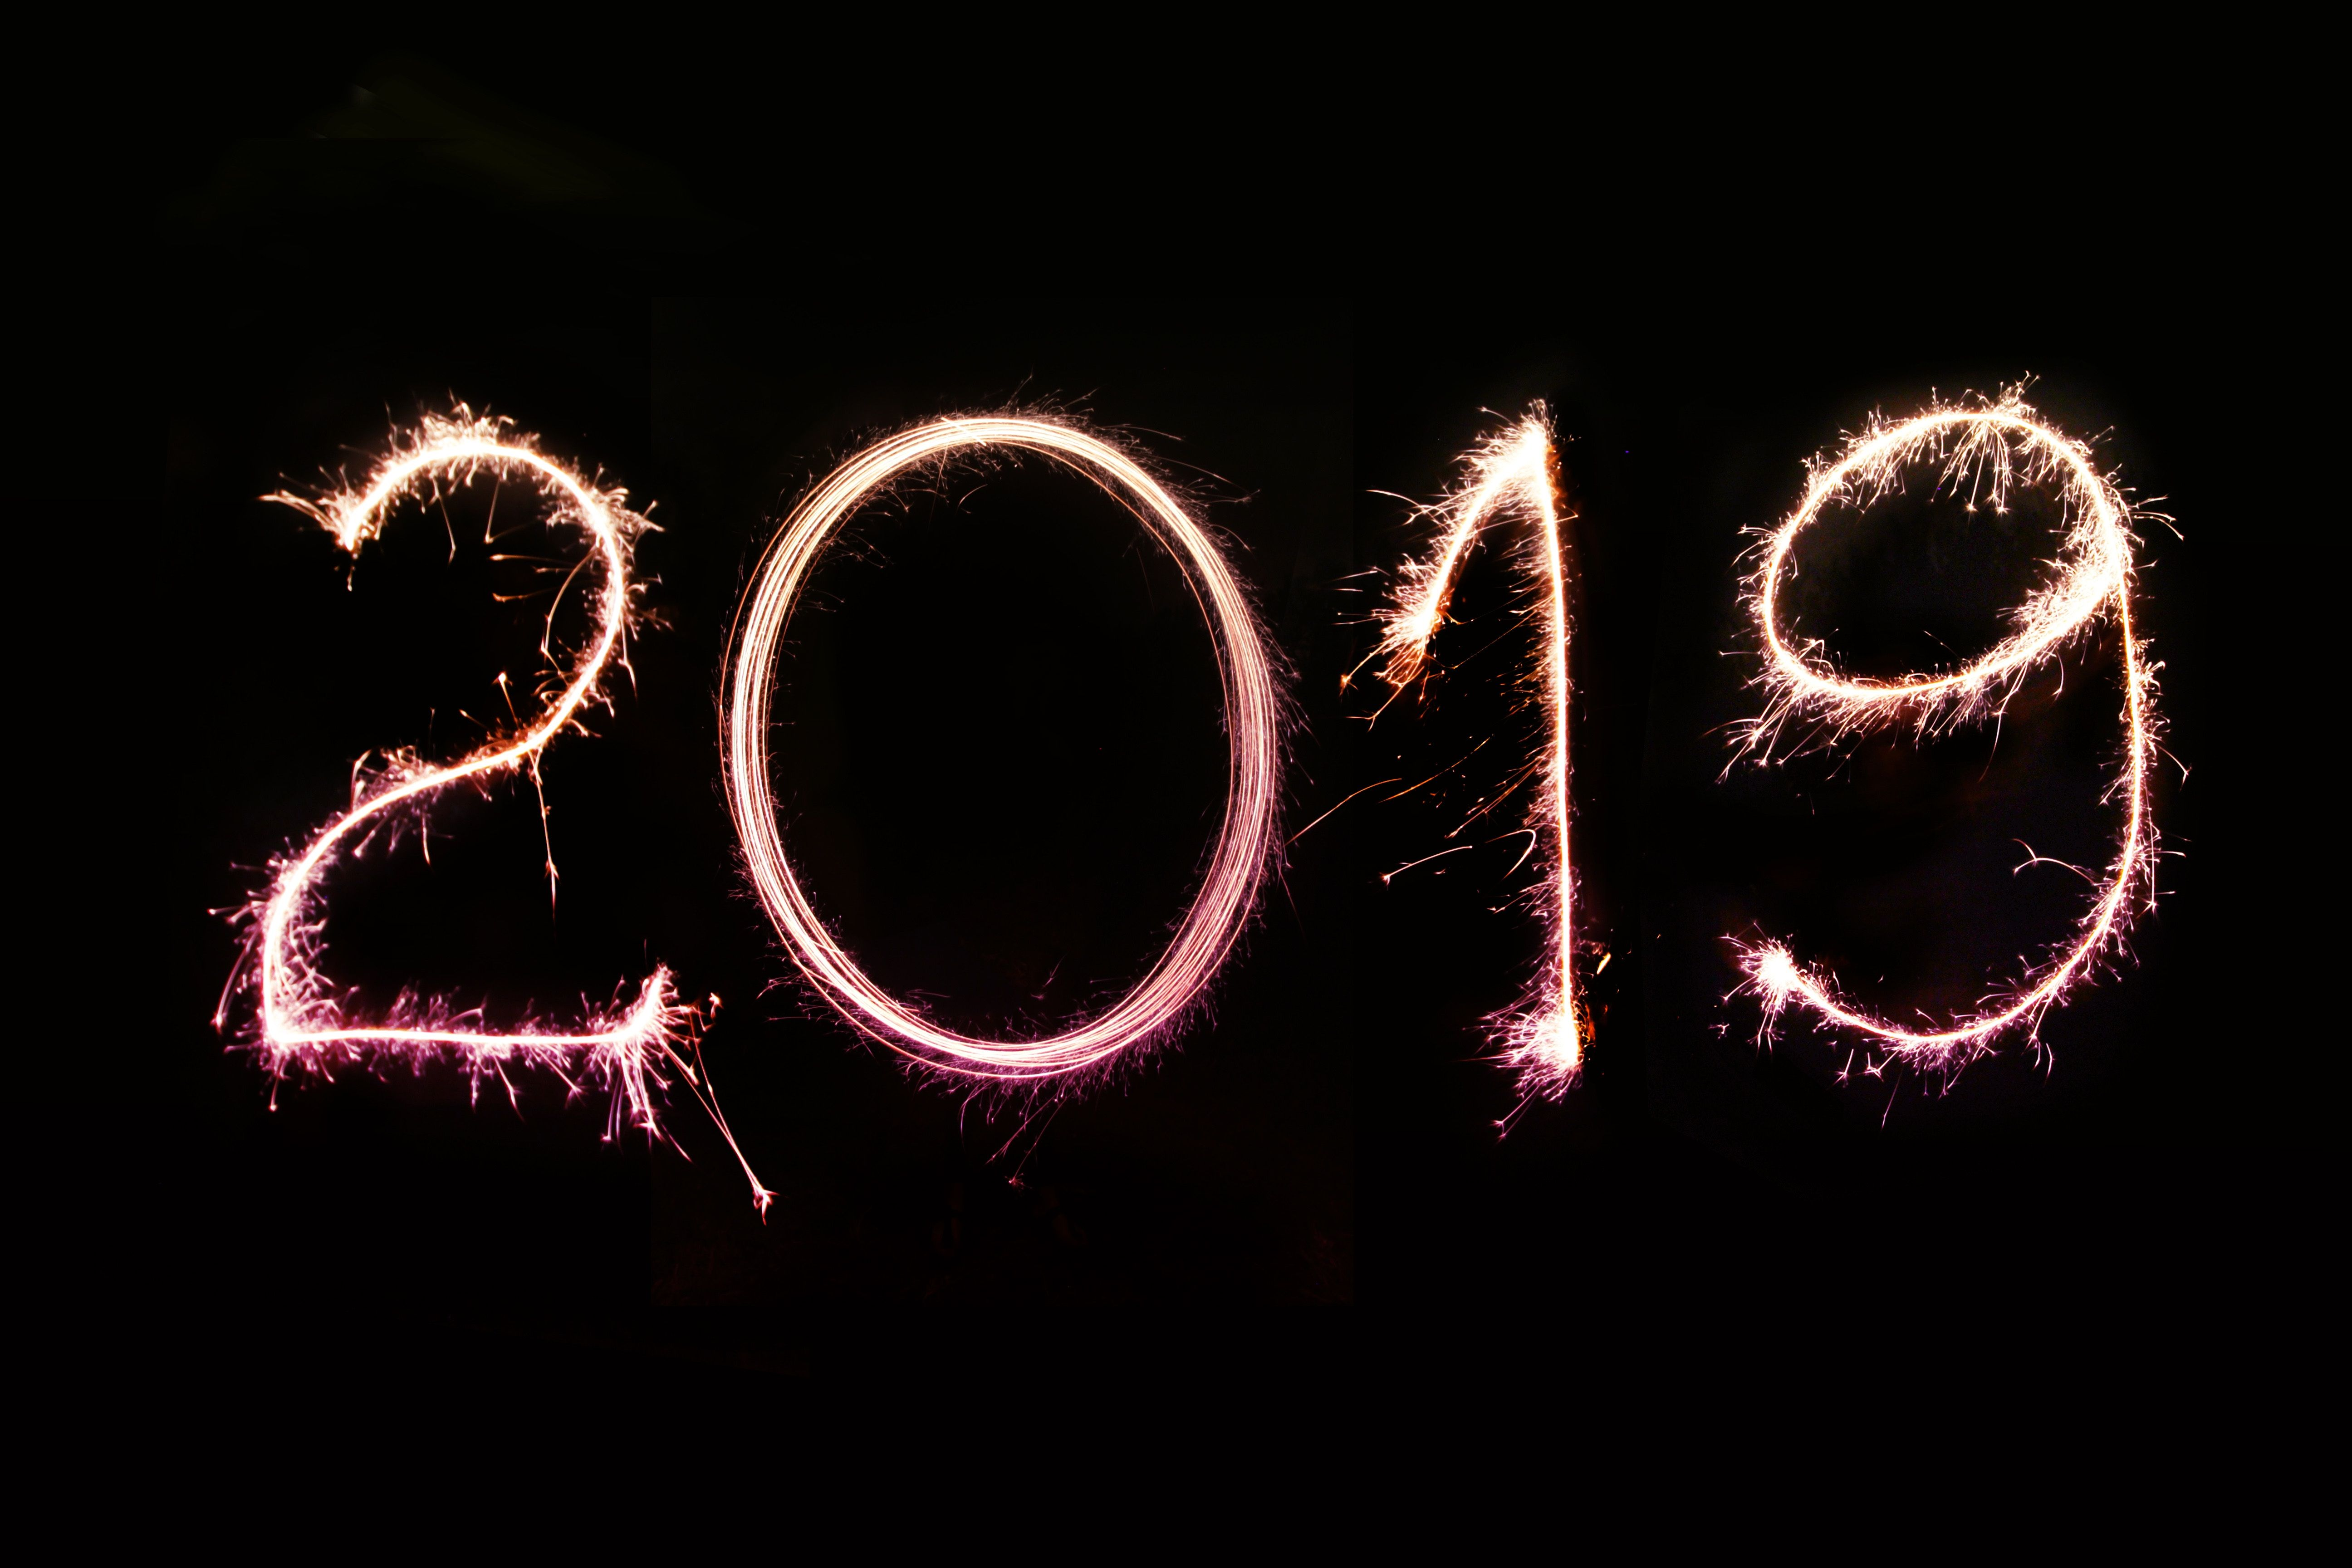 Accounting & Finance Roundup: What should you look out for in 2019?